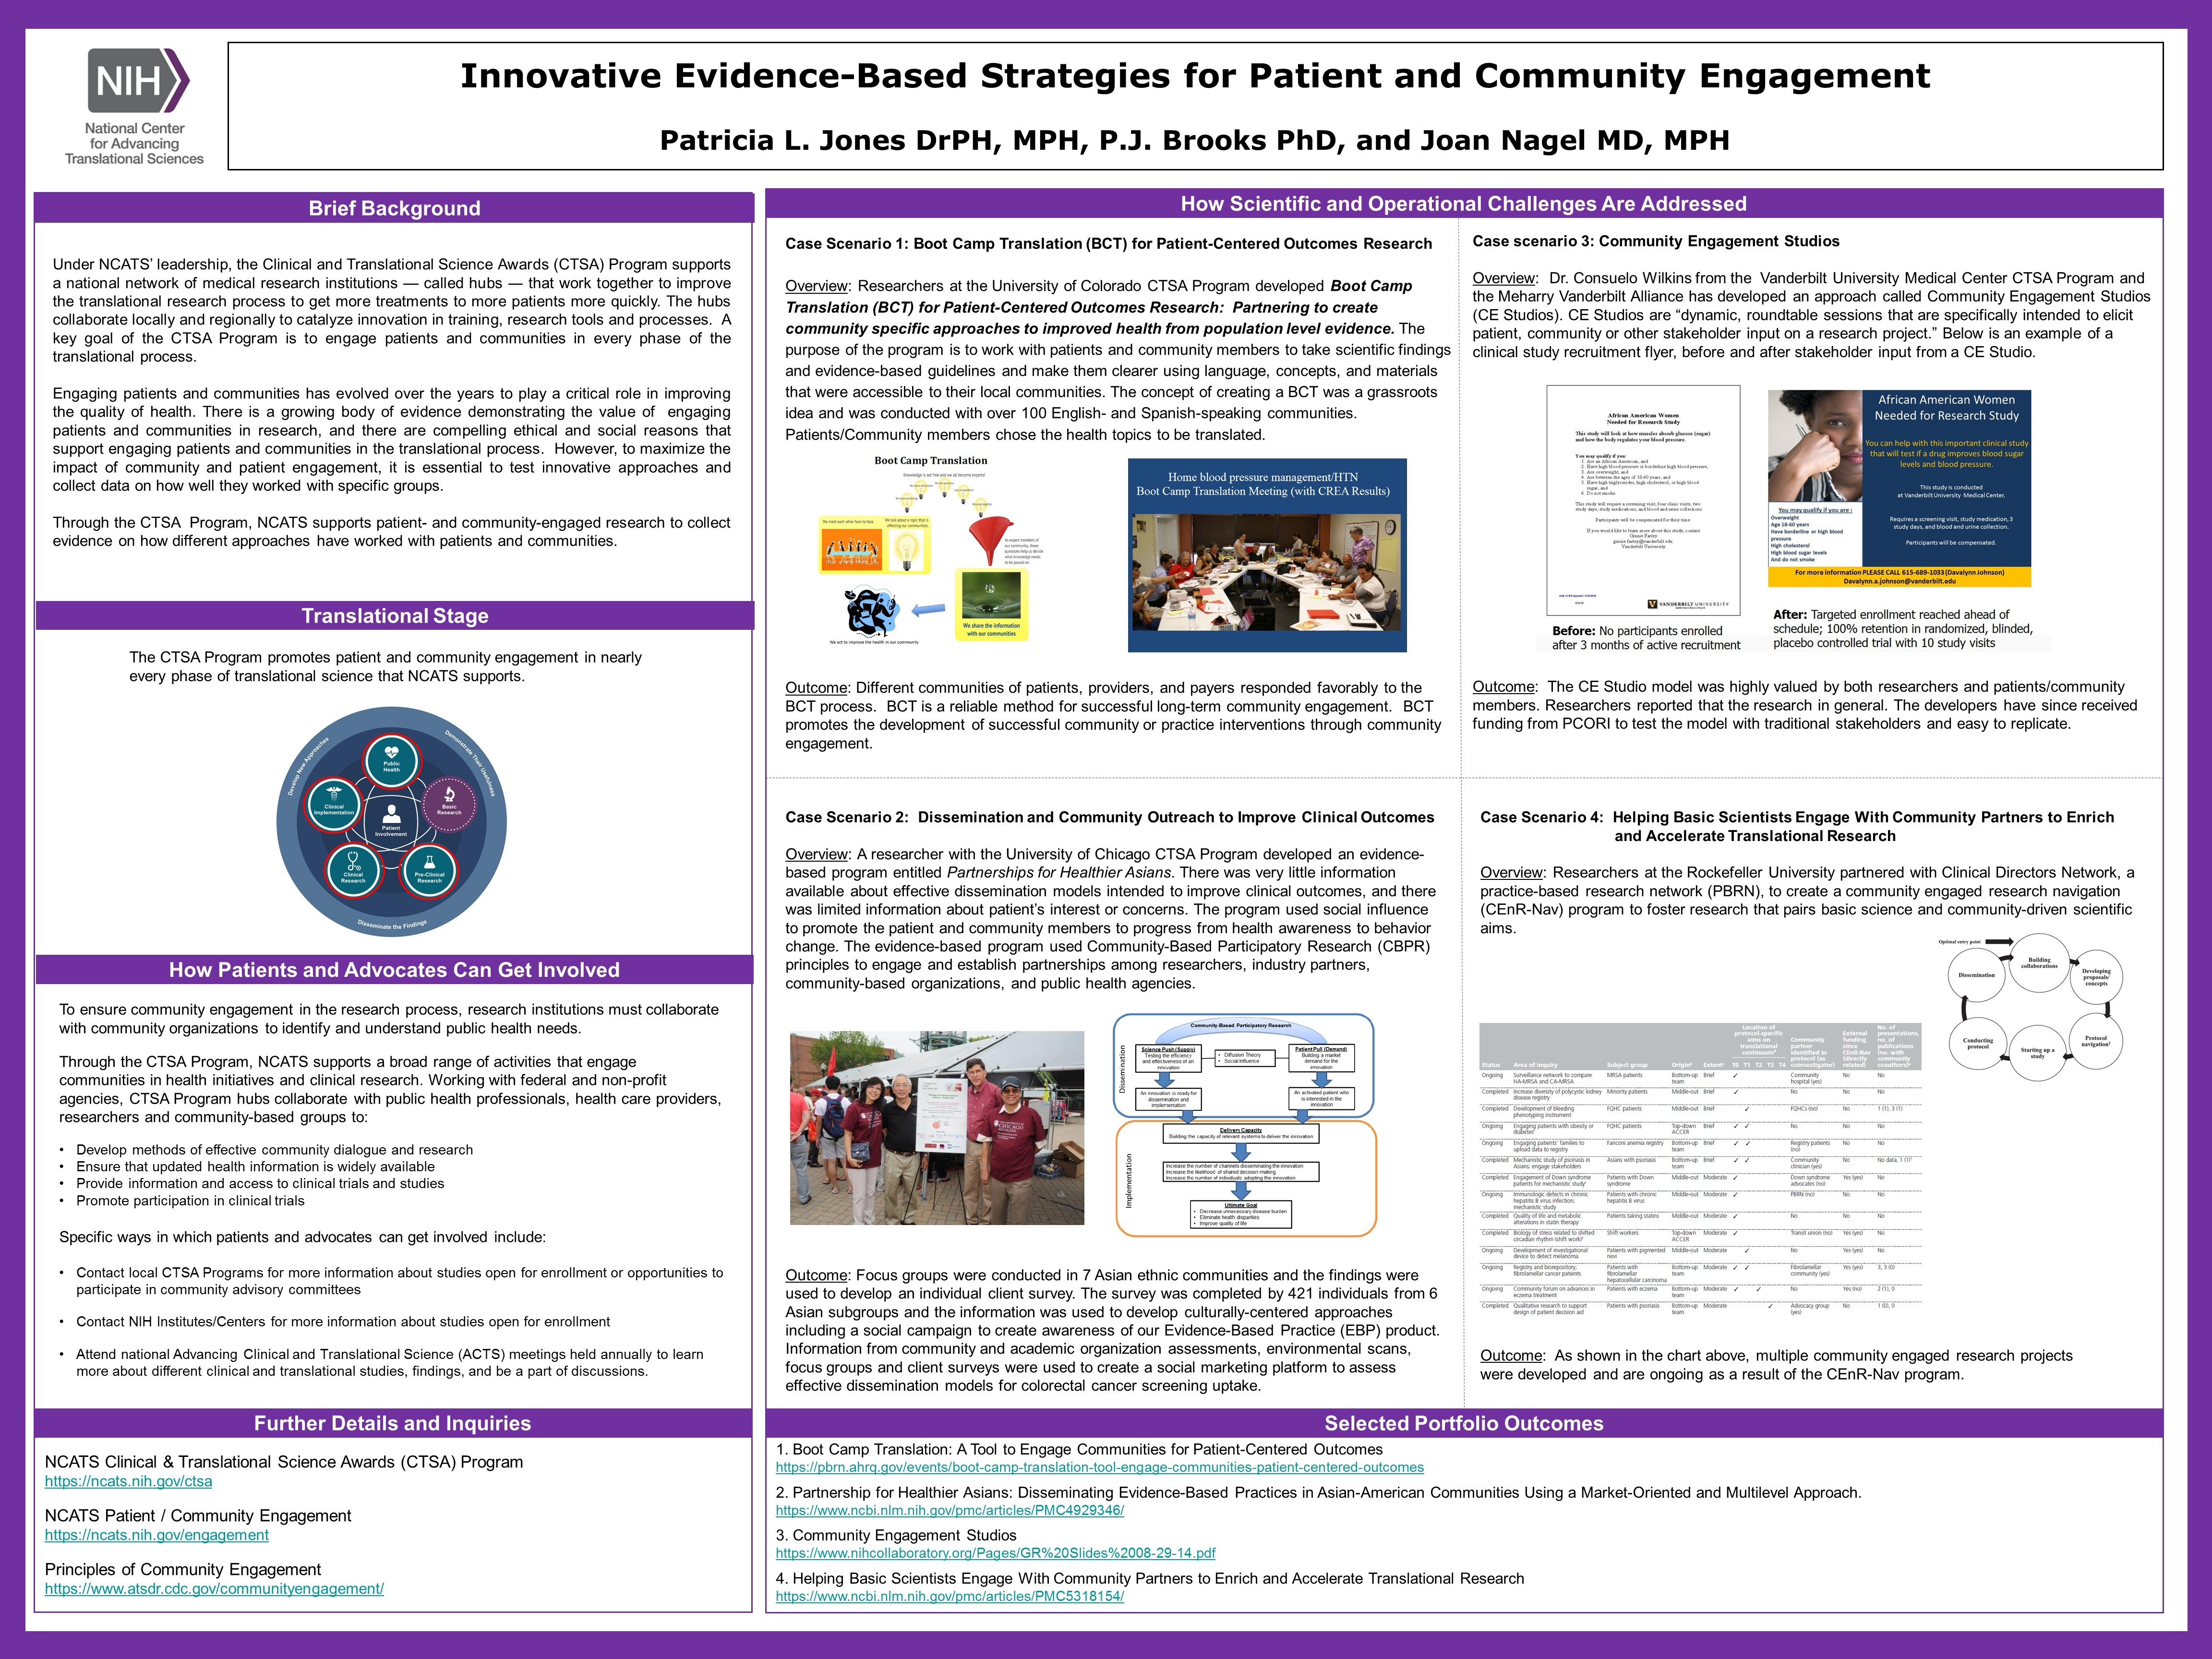 This NCATS Day poster provides background on Innovative Evidence-Based Strategies for Patient and Community Engagement, part of NCATS' Clinical and Translational Science Awards Program, including goals, where it falls within the path of drug and therapeutics development and the translational science spectrum, how patients and advocates can get involved, and how NCATS addresses scientific and operational challenges.